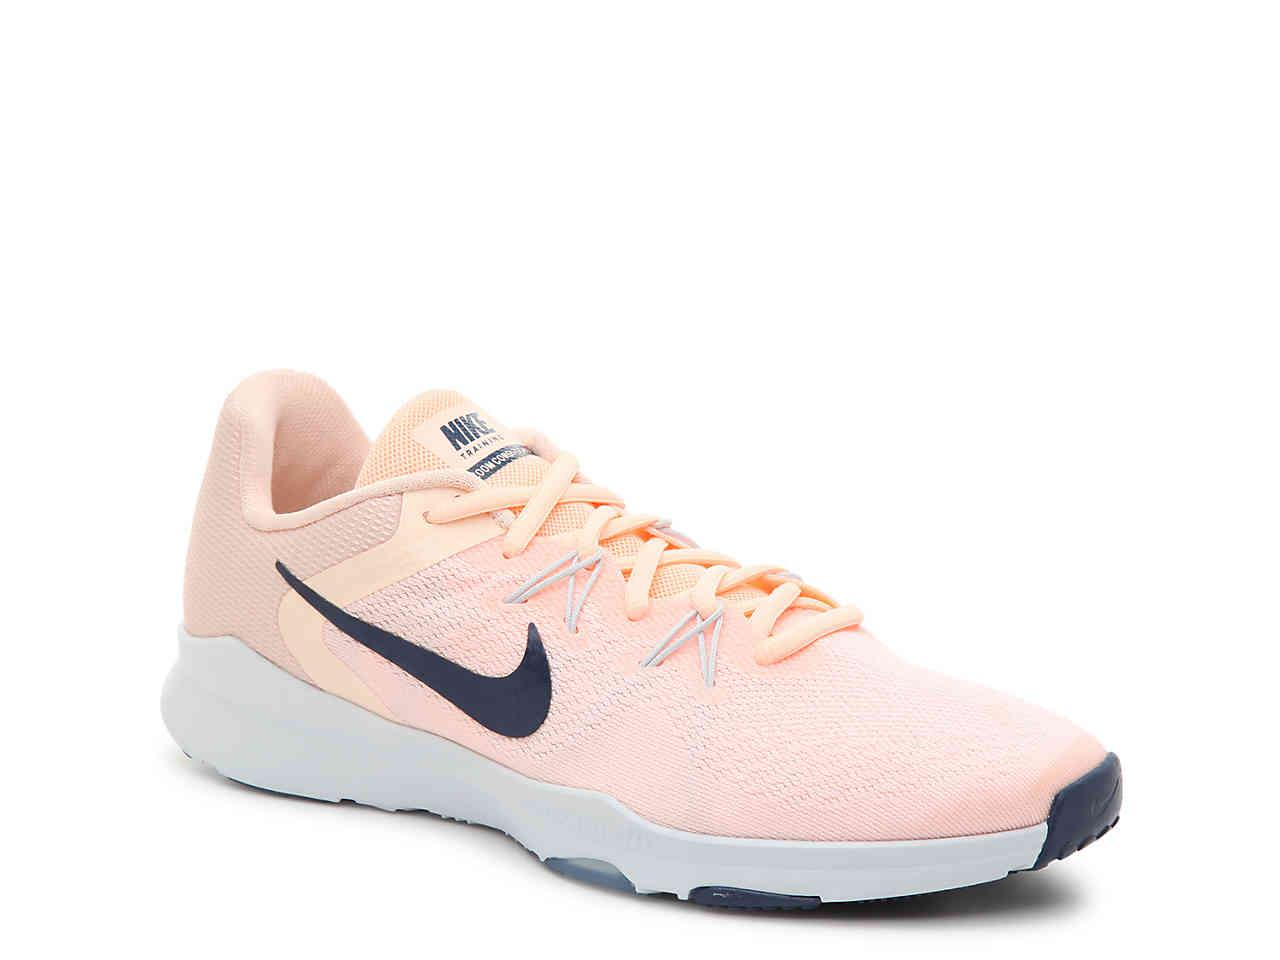 on sale 8a2d4 4a7ee switzerland lyst nike condition lightweight training shoe in pink 03f3e  10732